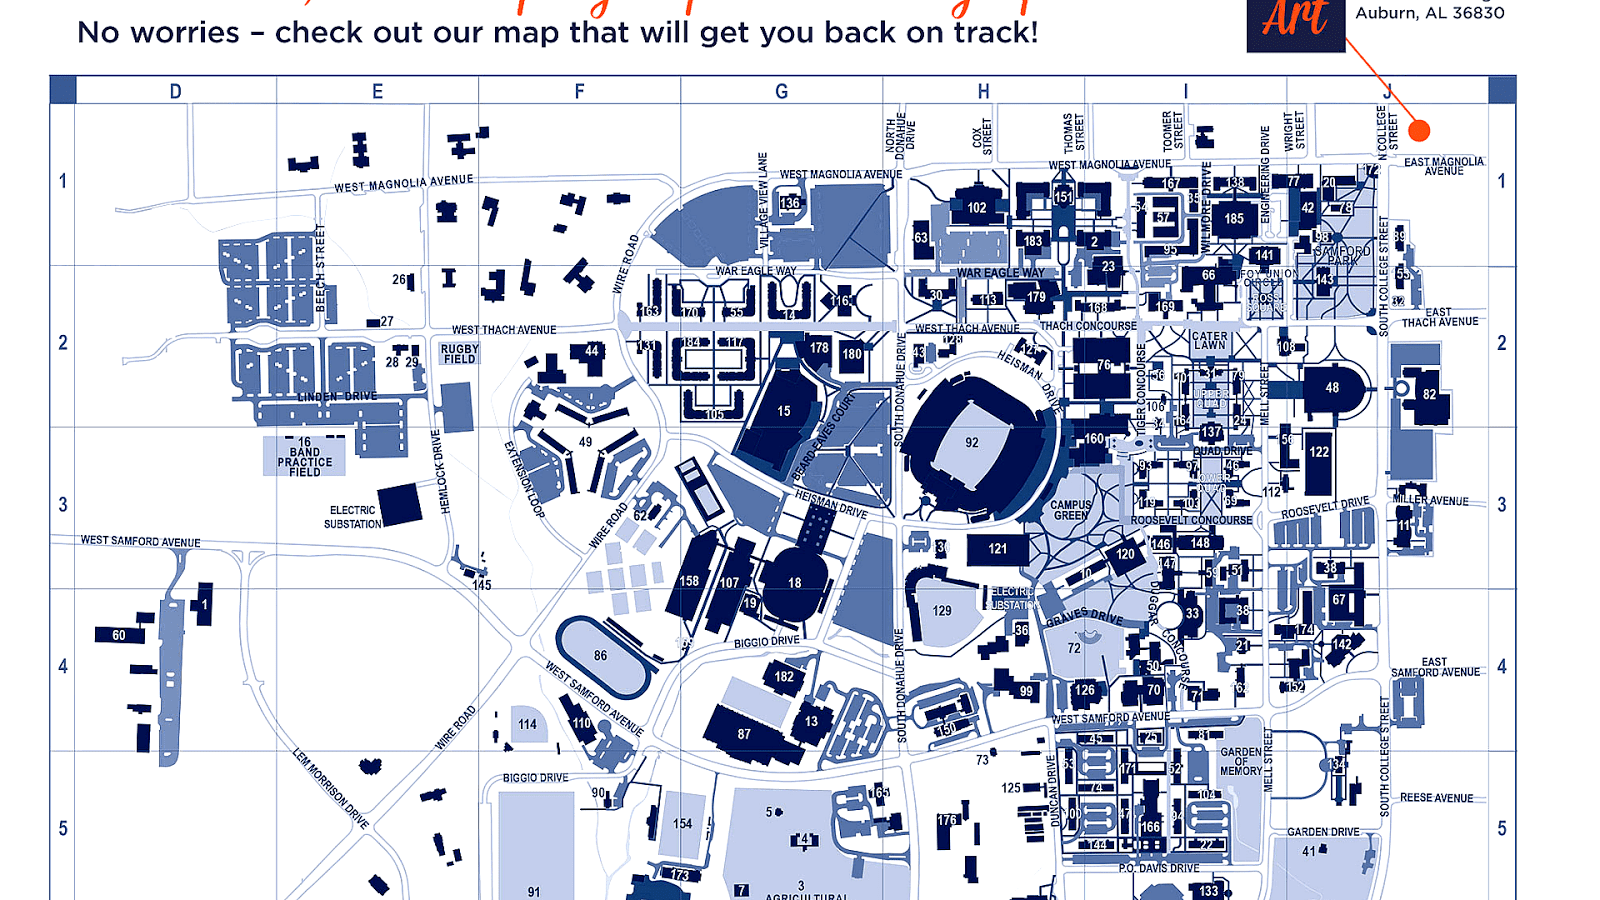 thomas nelson community college campus map Auburn University Campus Map University Choices thomas nelson community college campus map